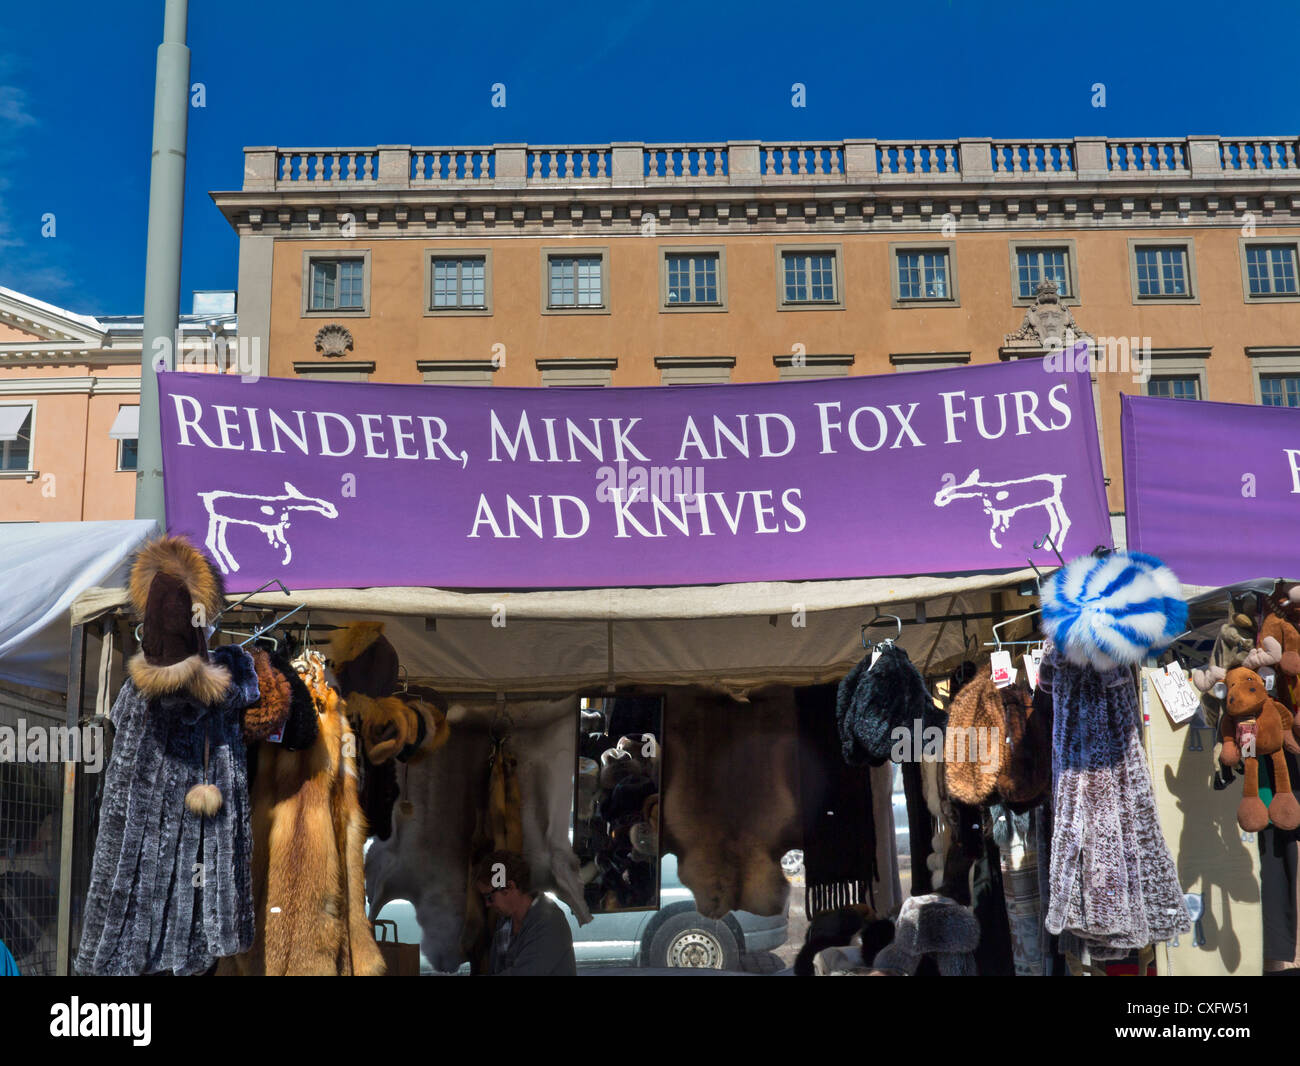 Controversial sign on Helsinki harbour market stall promoting mink, fox ,reindeer furs and knives! Finland - Stock Image